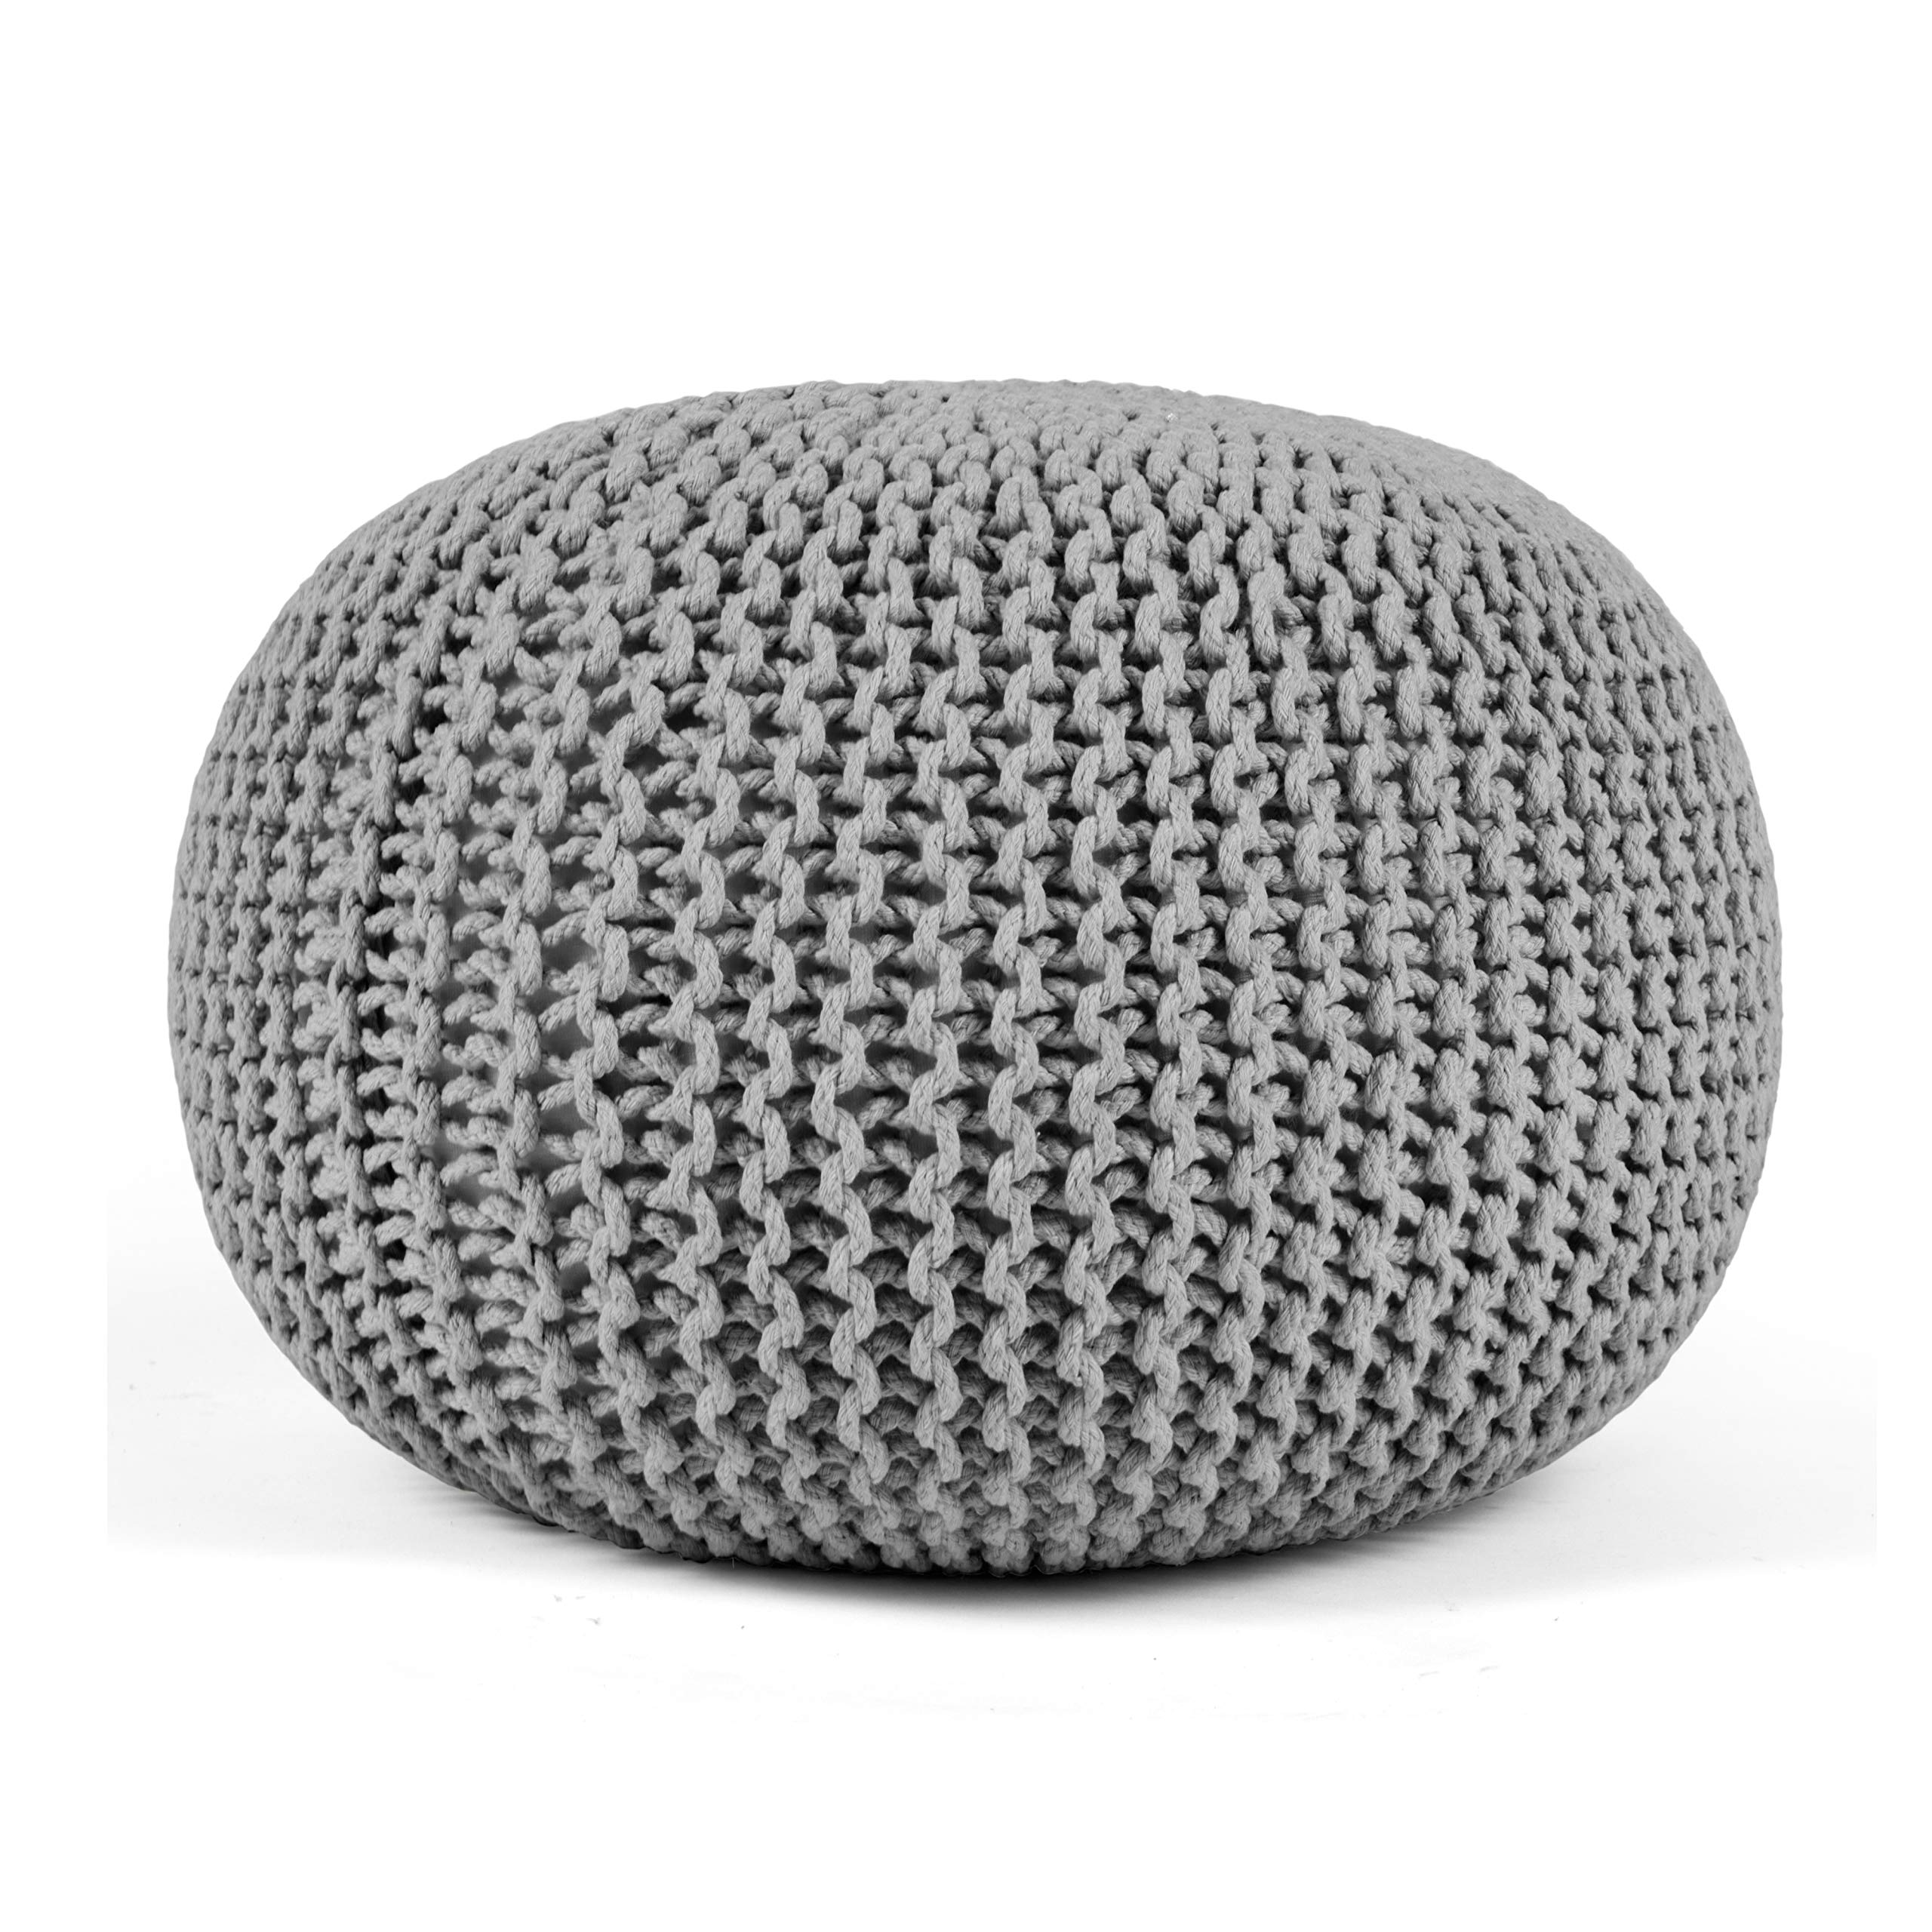 HYNAWIN Knit Pouf Floor Ottoman 100% Cotton Braid Cord Pouf Foot Stool Home Decorative Seat for Living Room, Bedroom - 20 Dia x 12 High - Gray by HYNAWIN